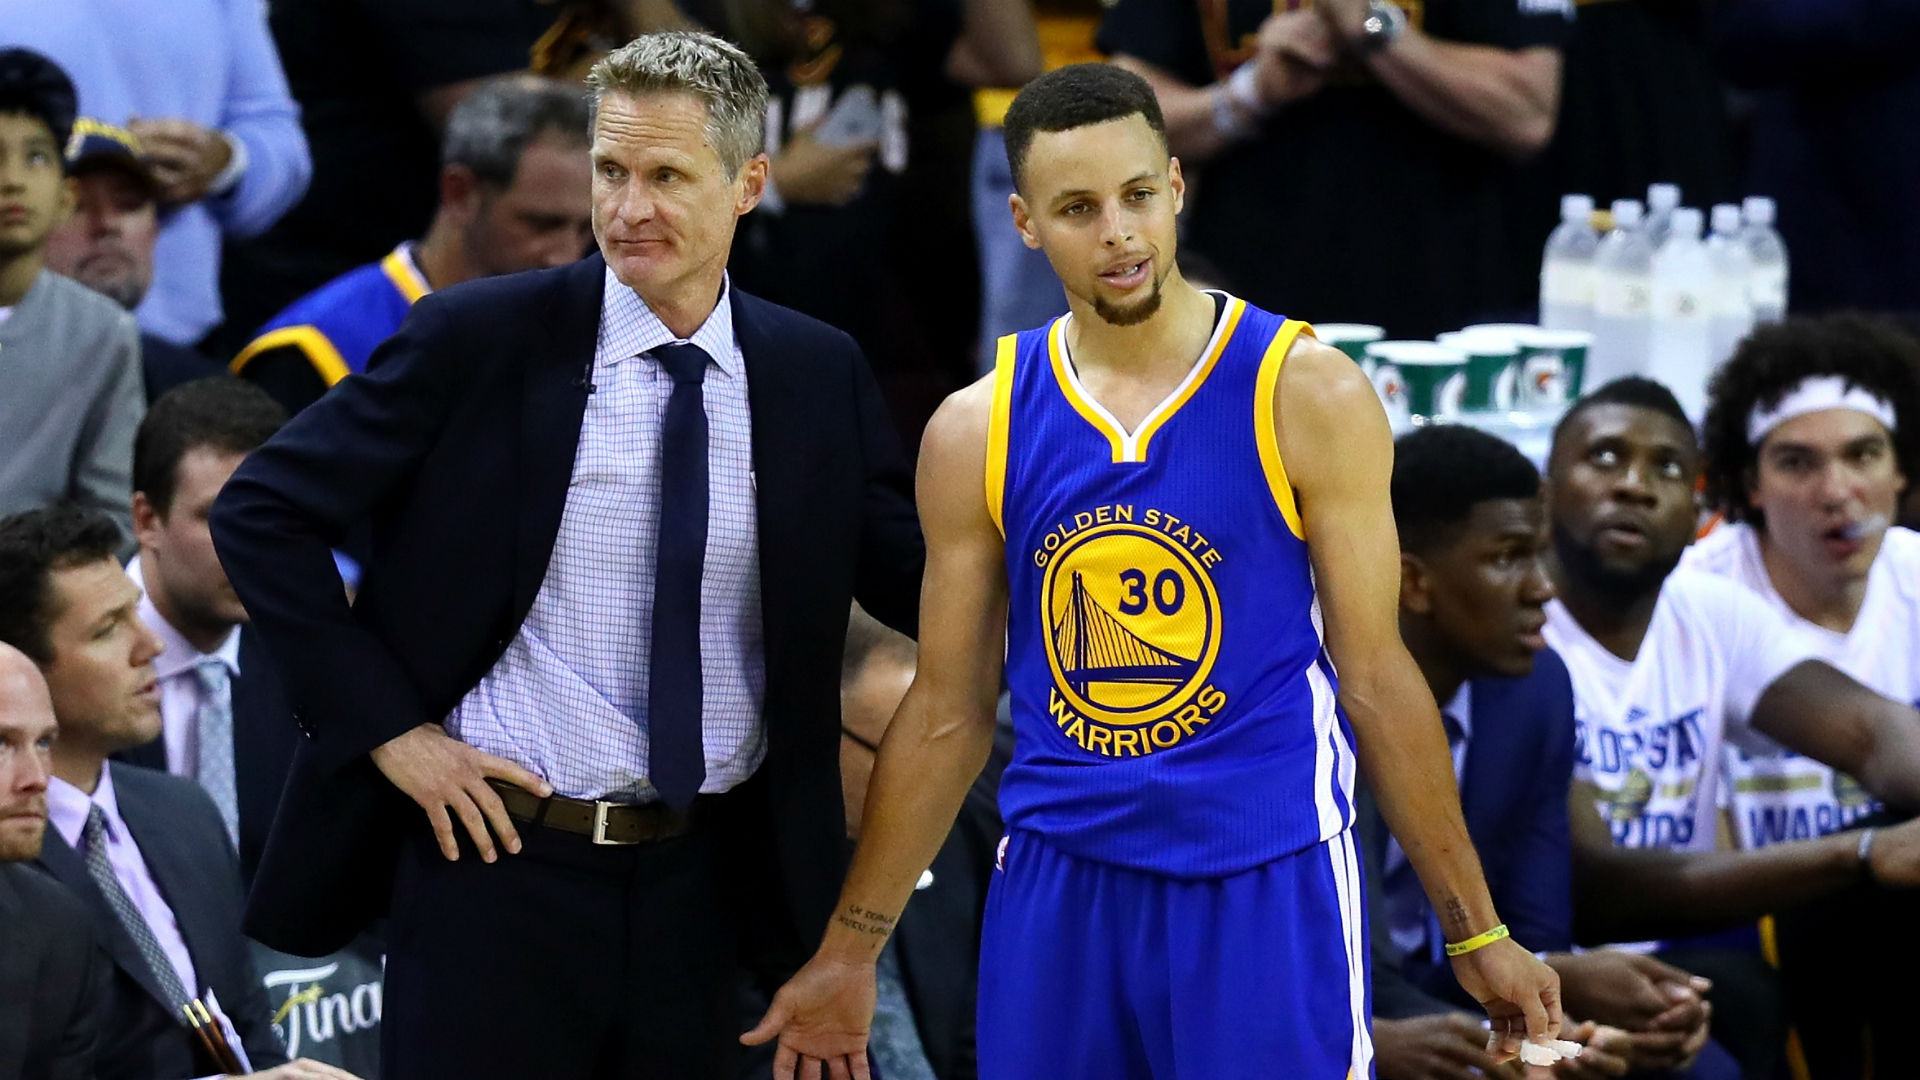 Steve Kerr: Warriors will get better with Steph Curry out 'because we have to'